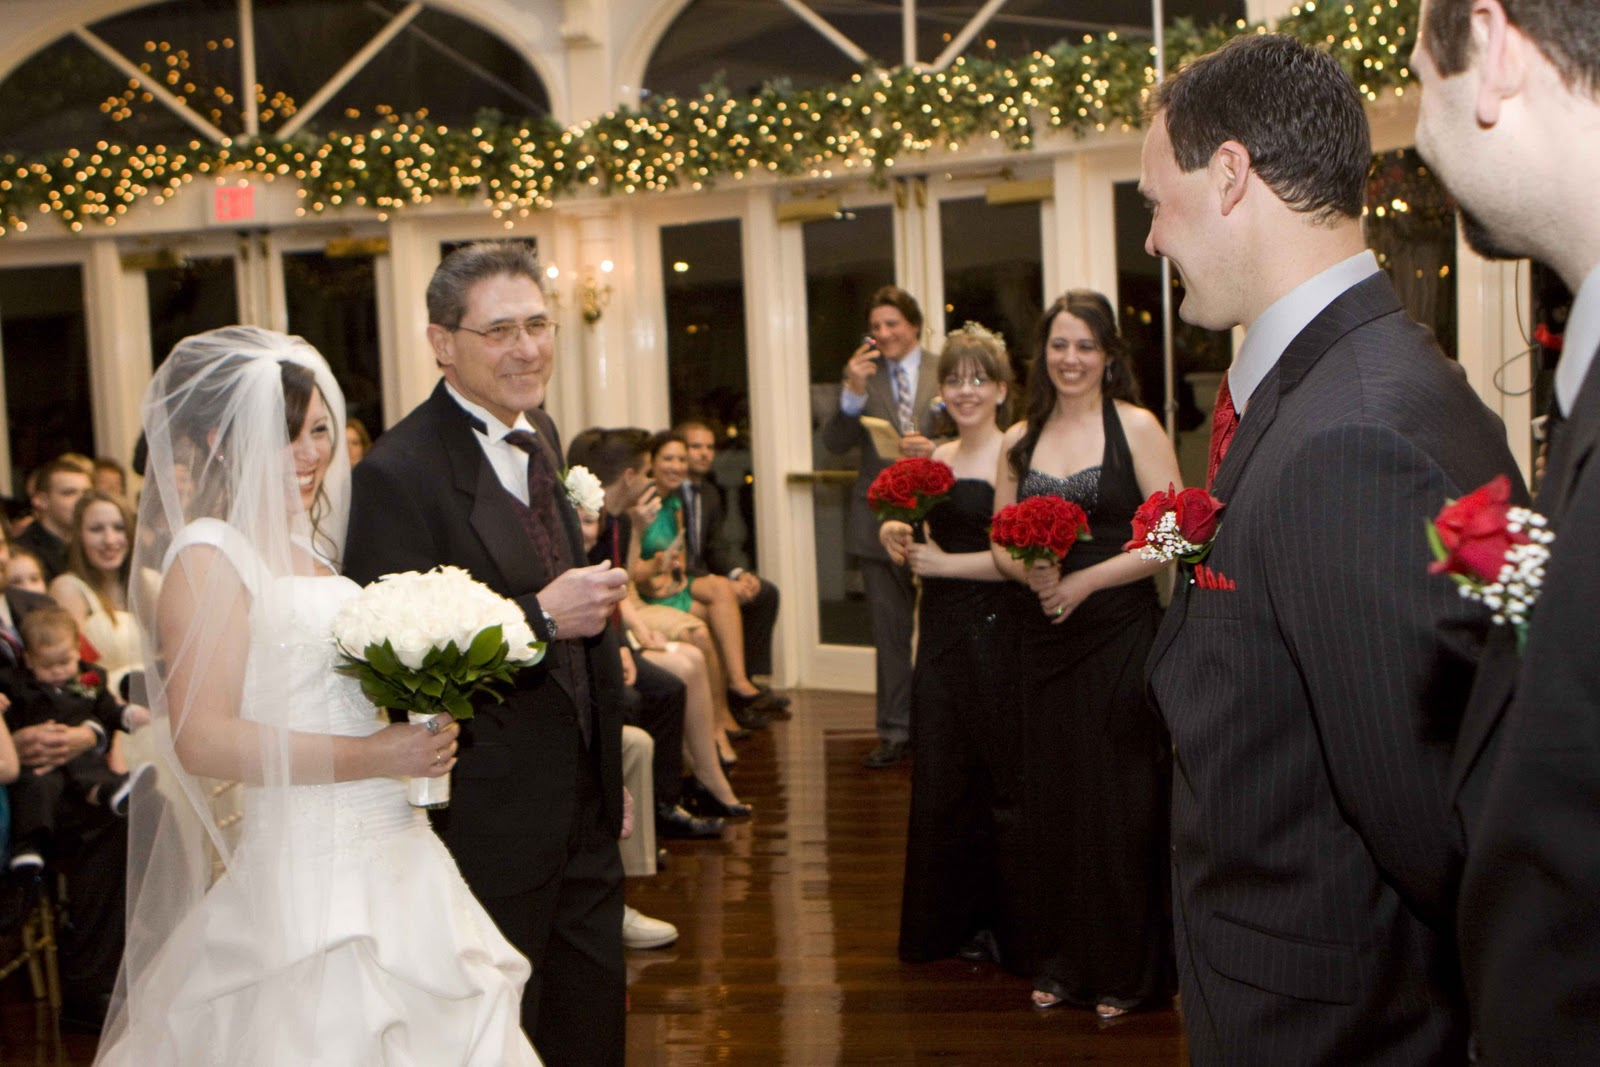 NICK CARTER PHOTOGRAPHY INC.: The wedding Of Cait and Brad ...